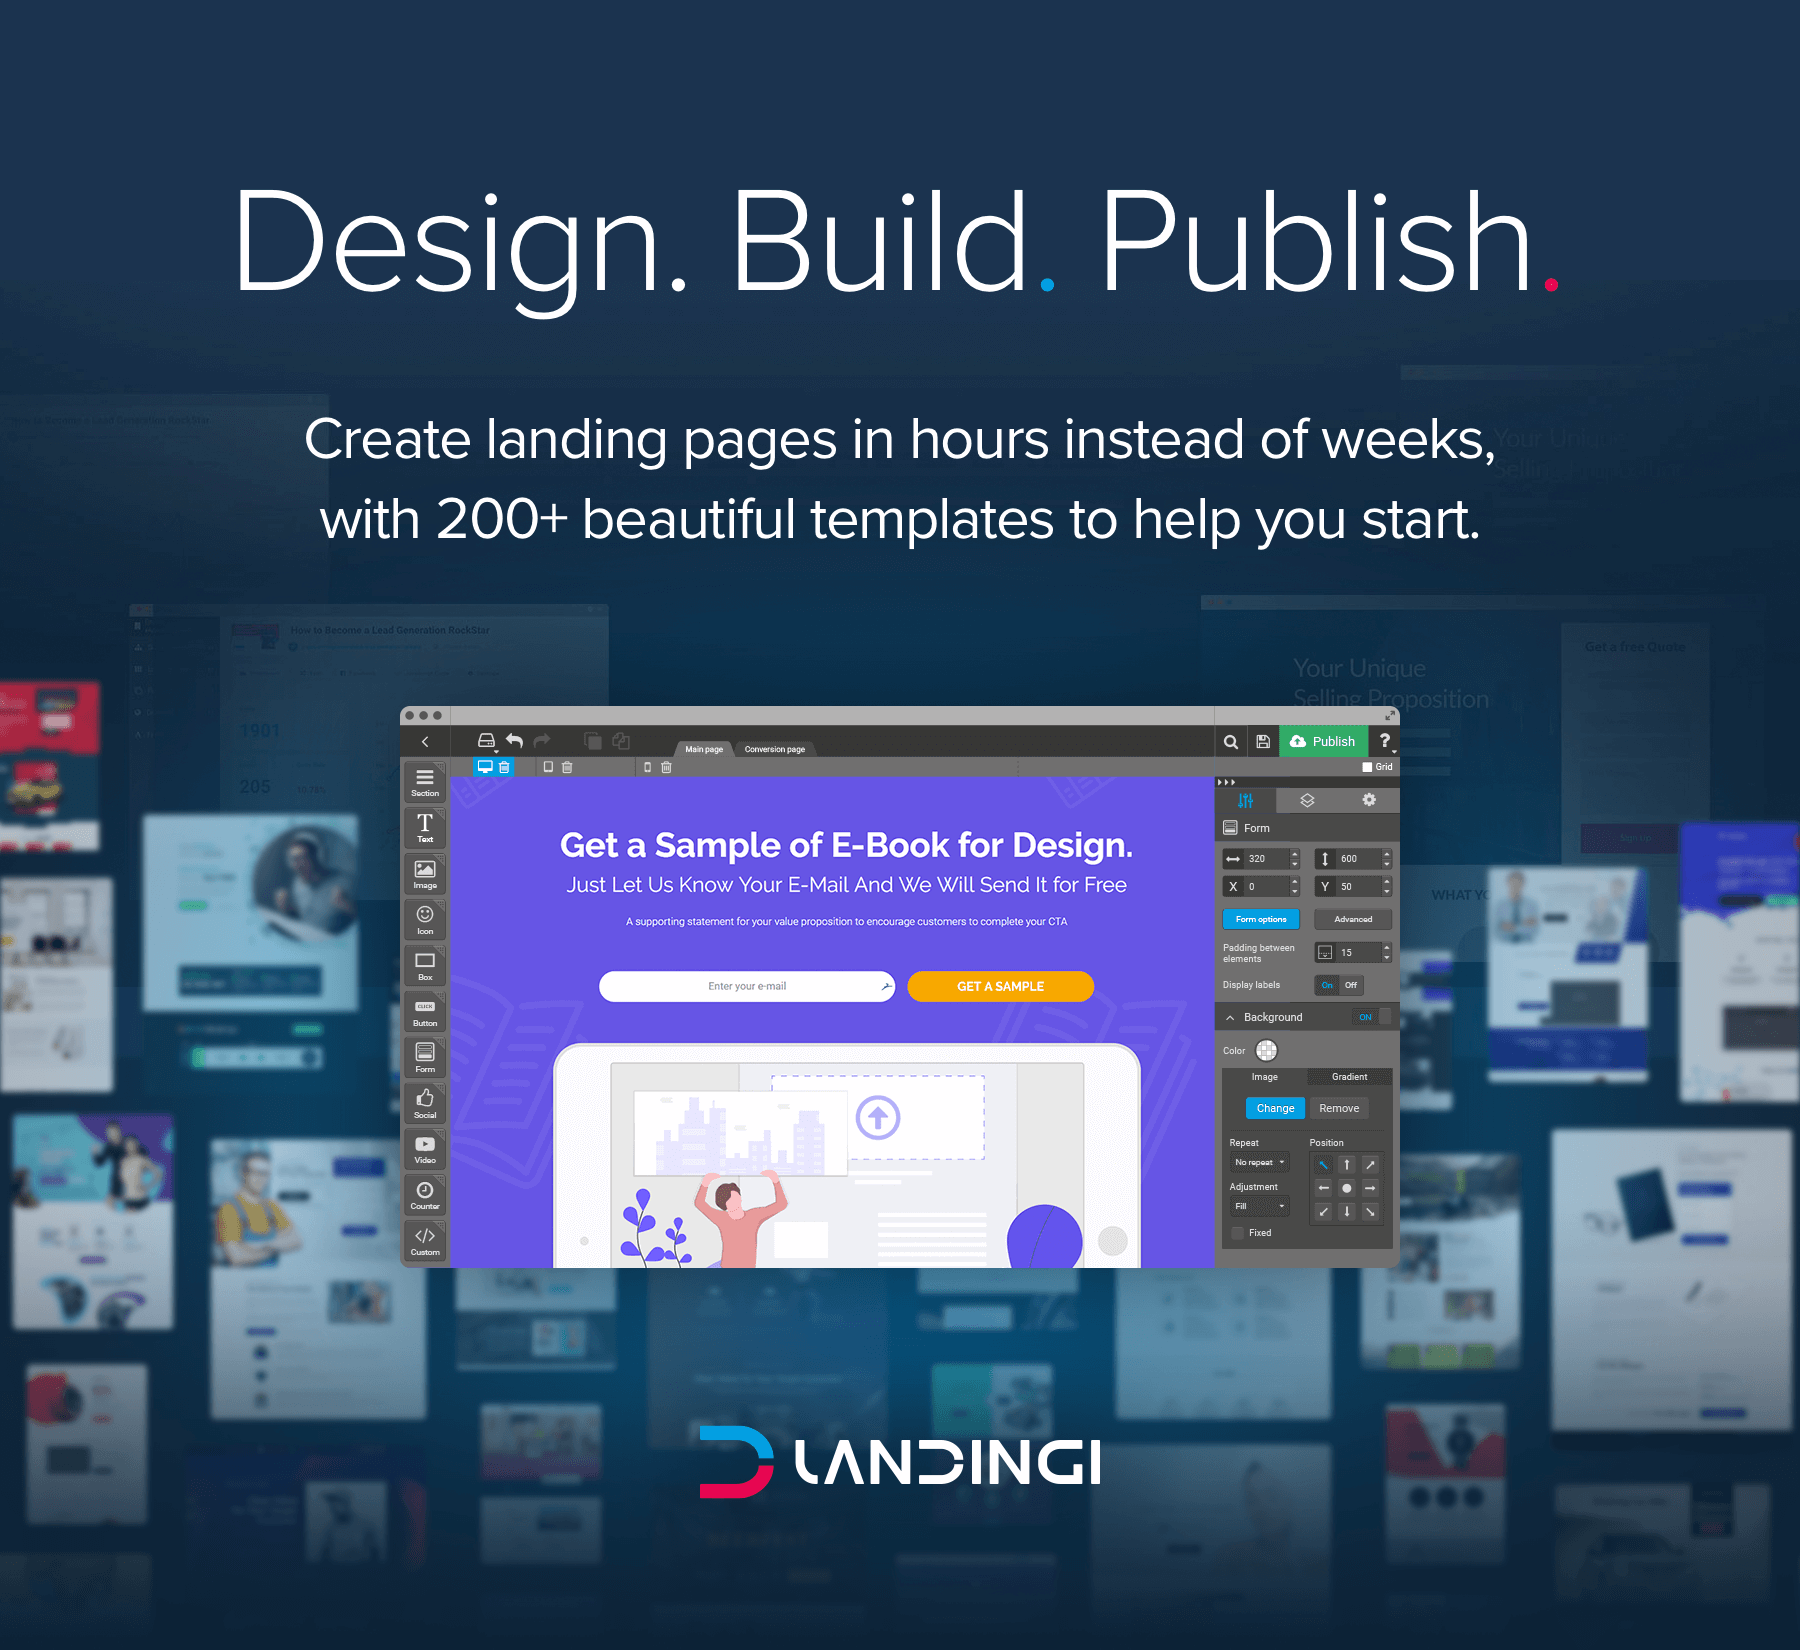 Landingi - A Powerful Landing Page Builder